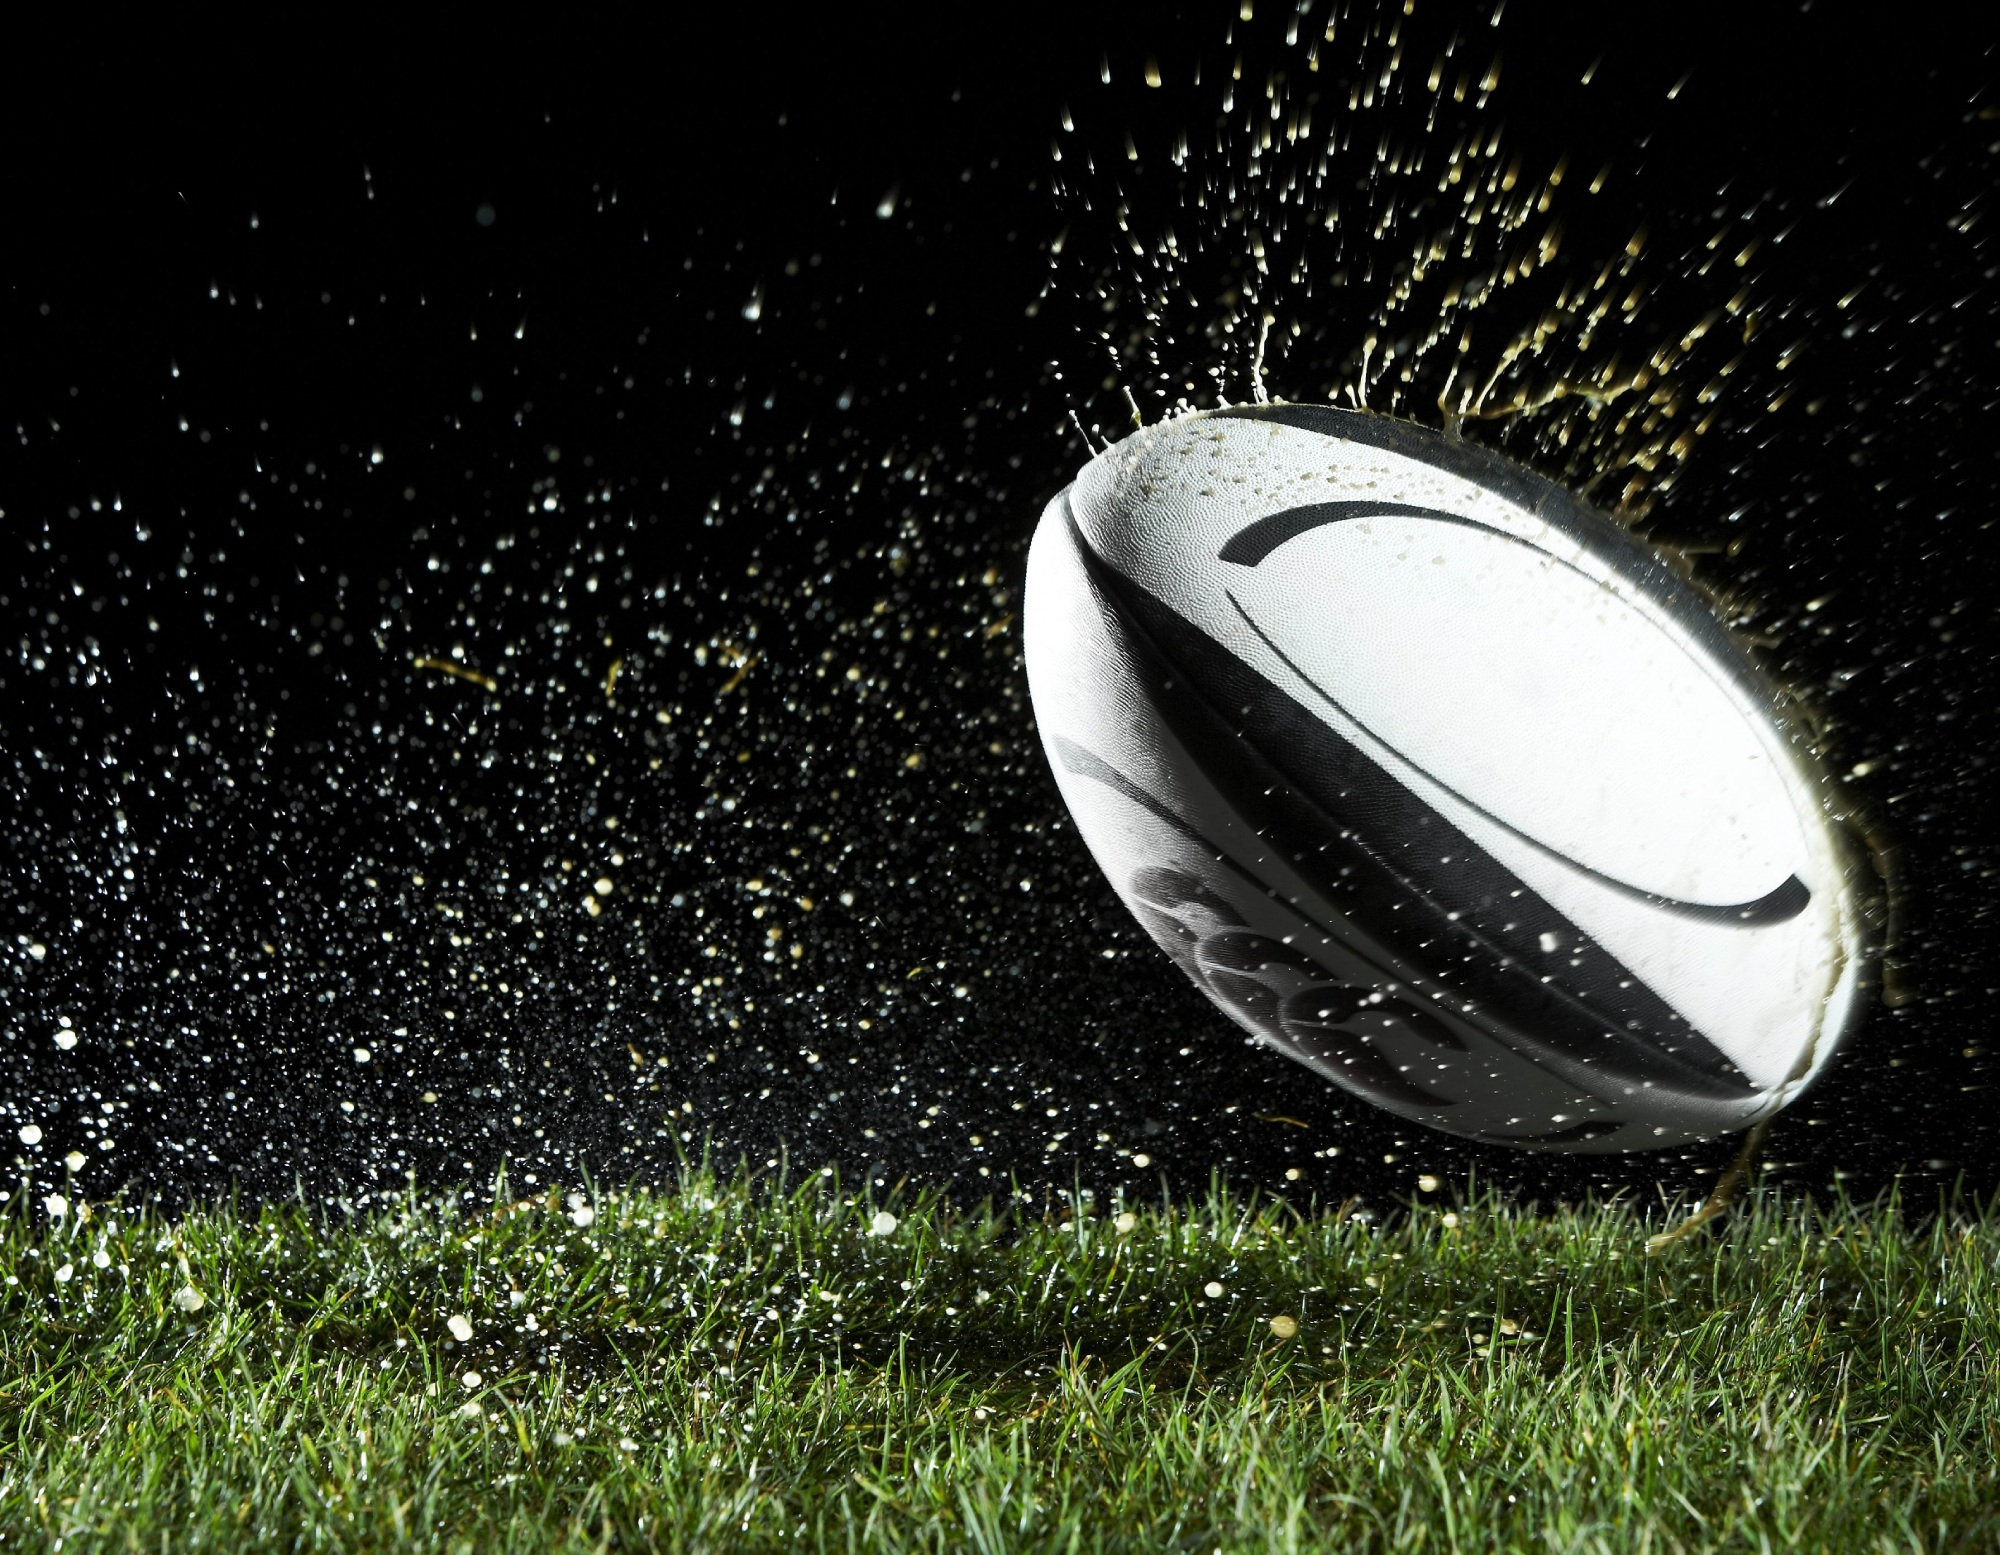 rugby union: perth bayswater smashedwests scarborough 43-0